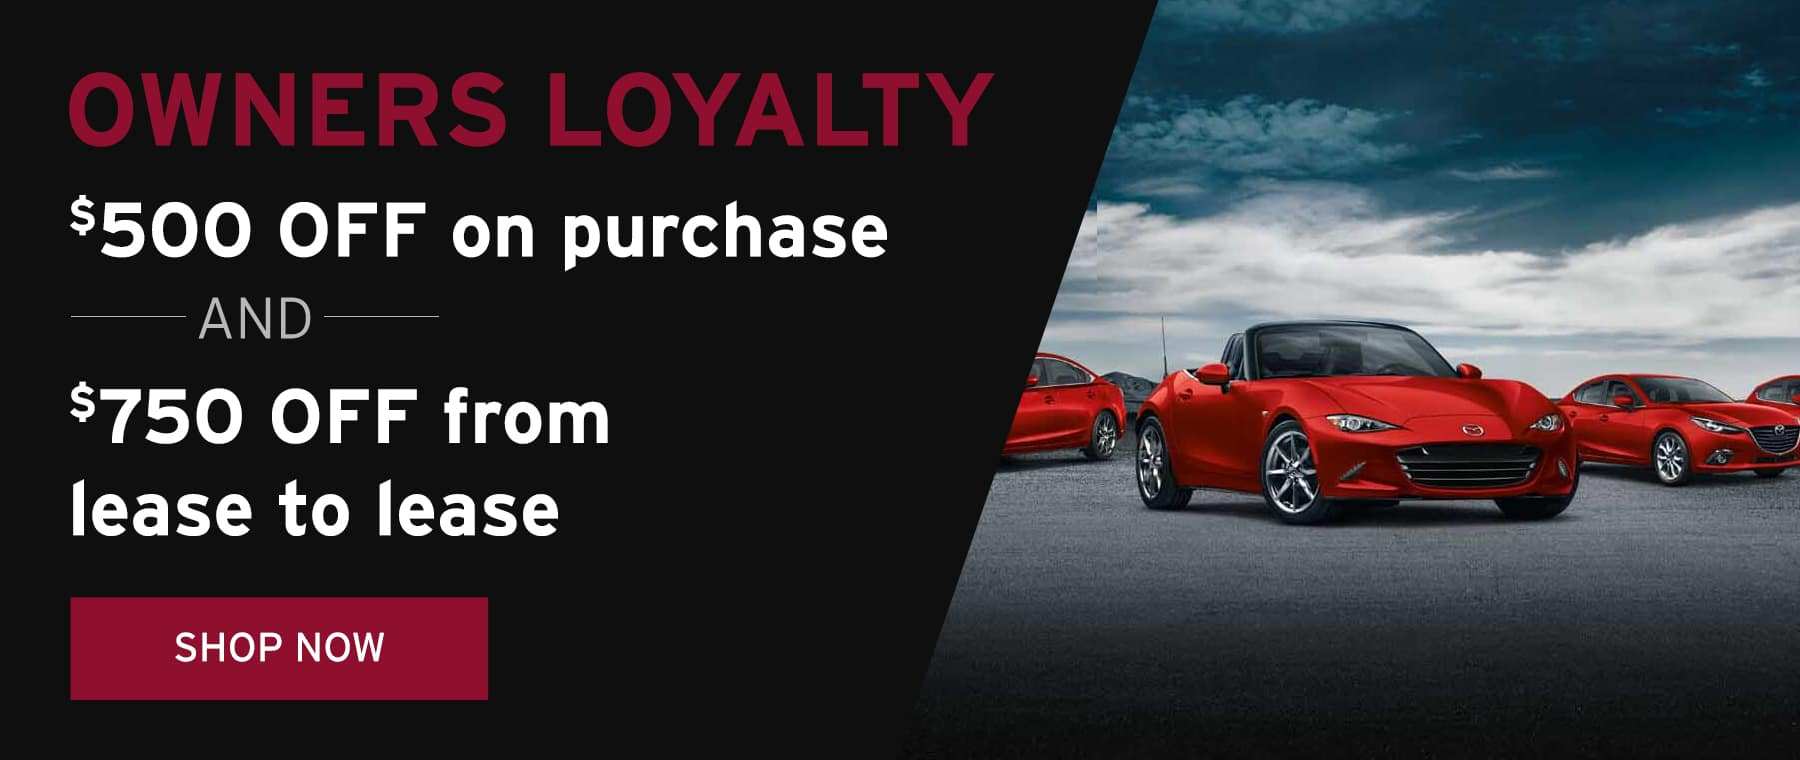 June 2018 Owners Loyalty Offer